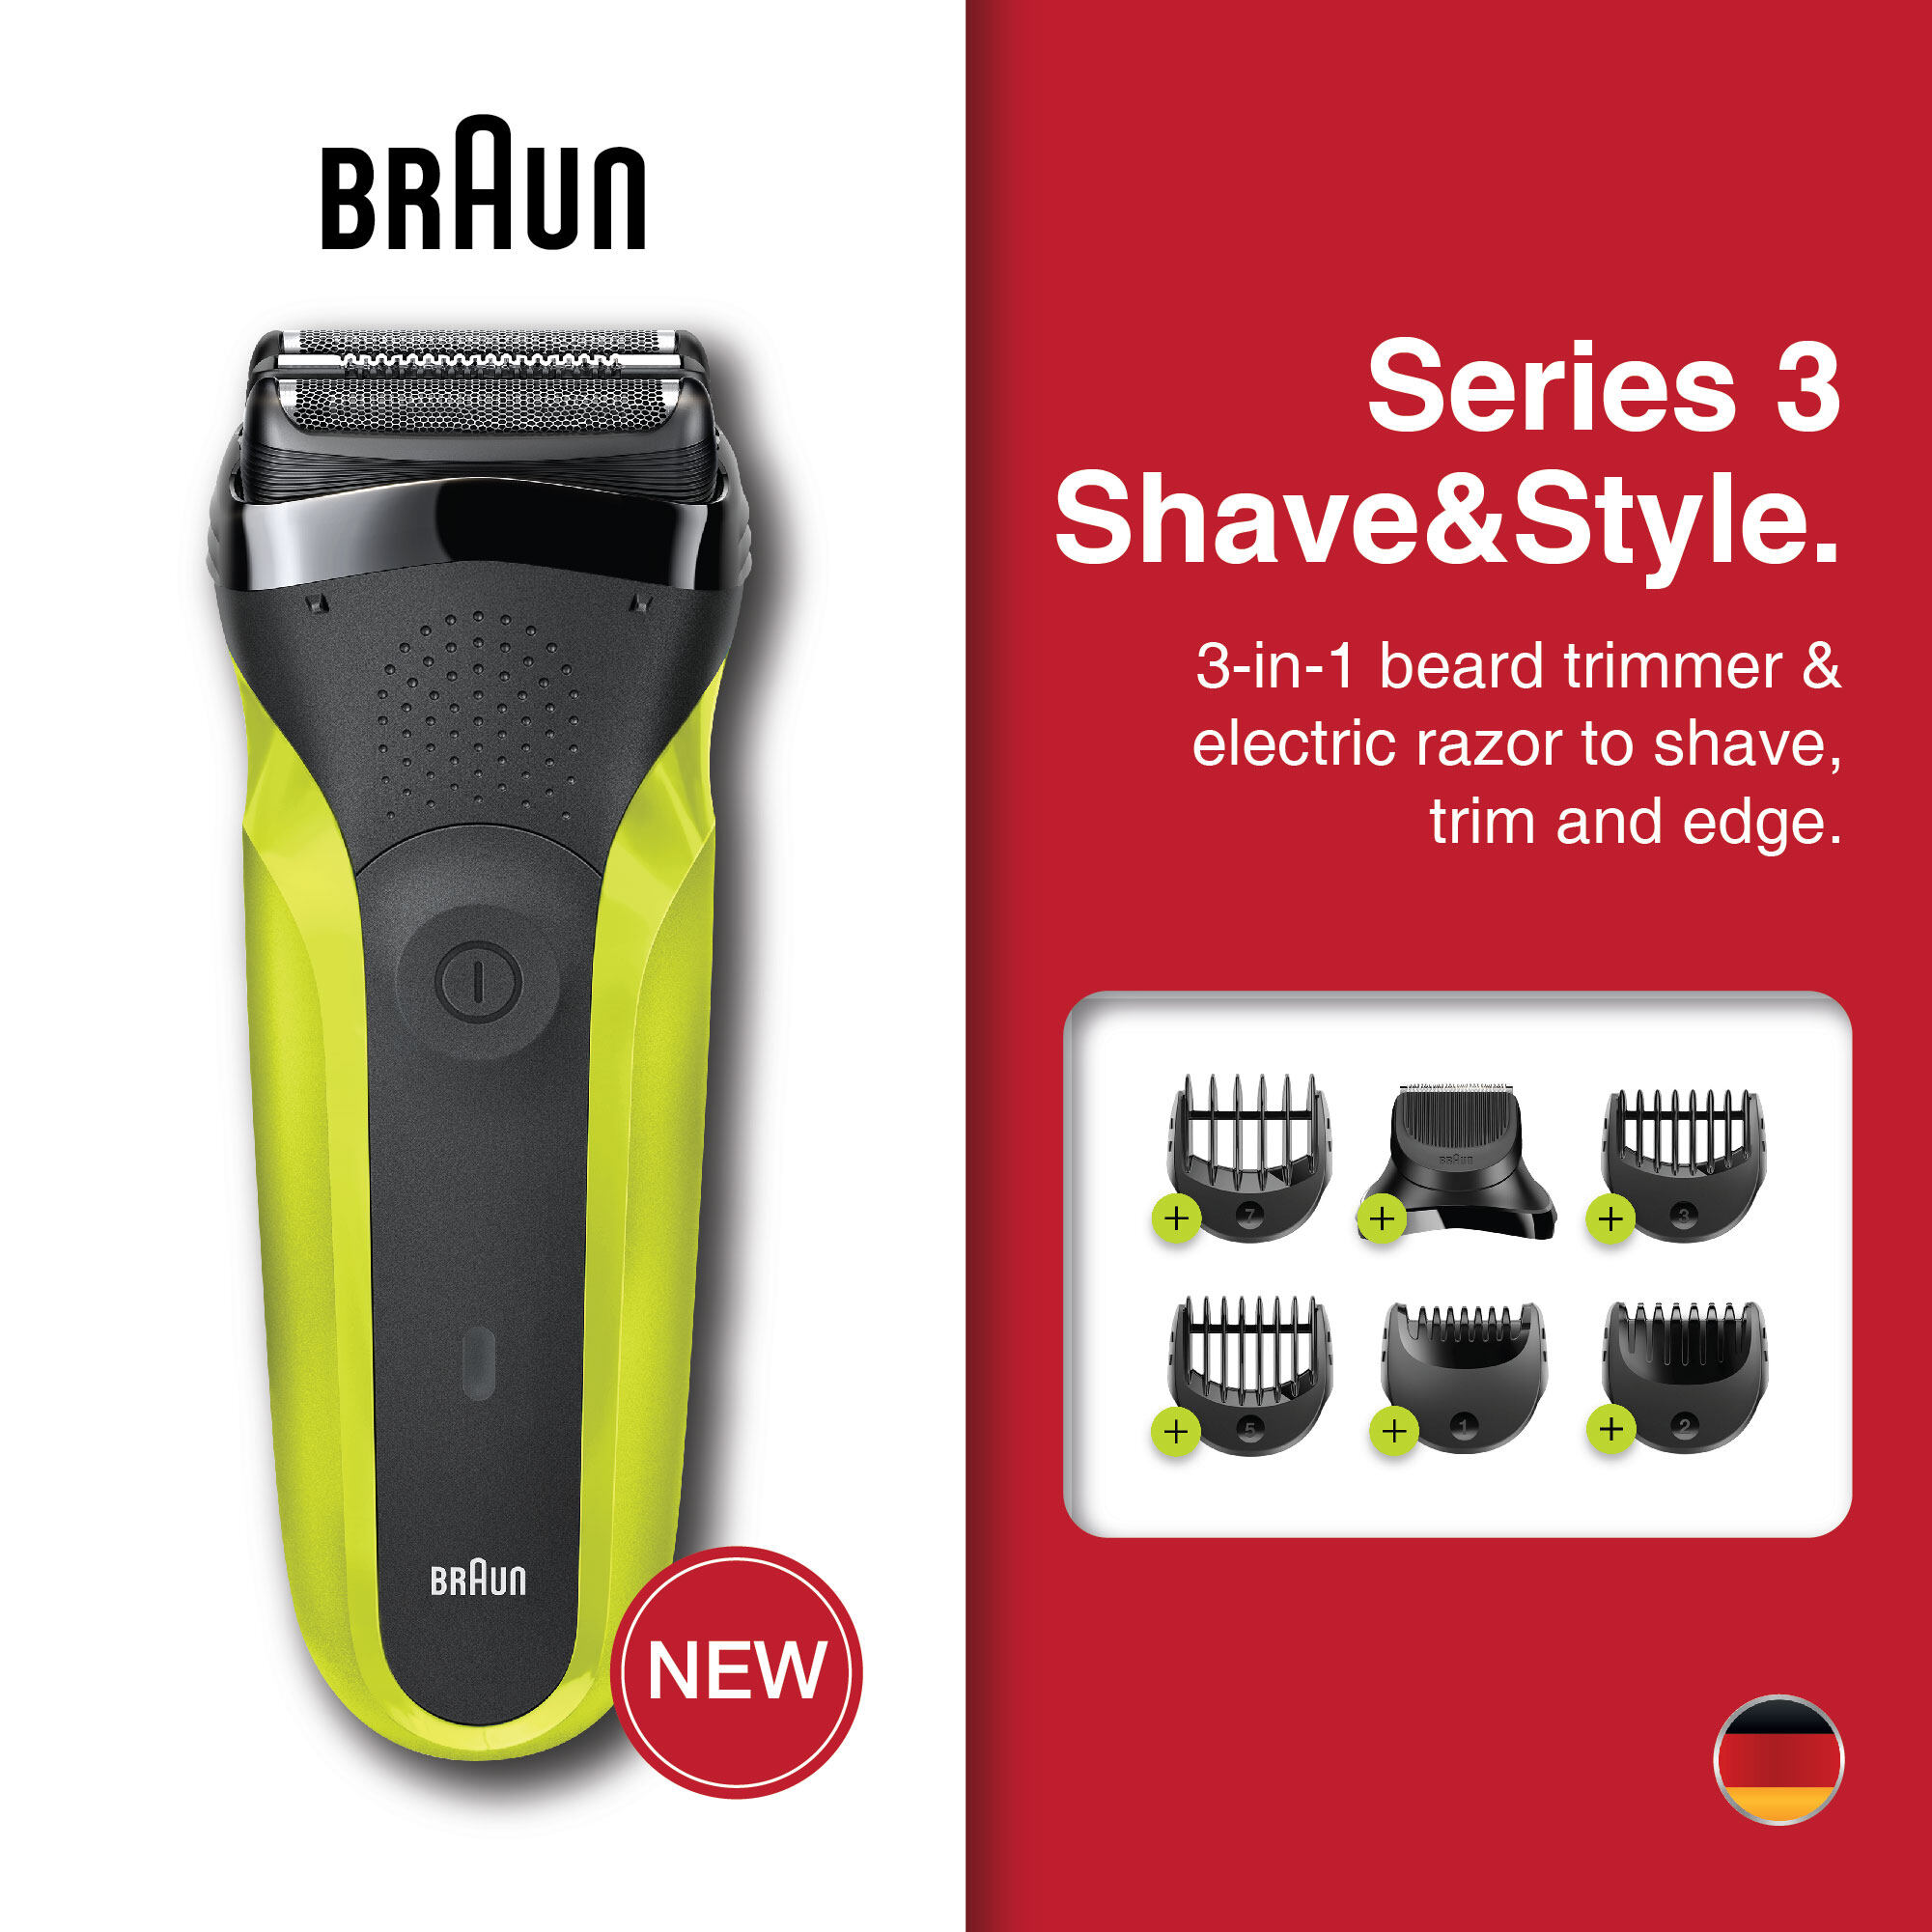 Braun Series 3 Shave&Style 300BT shaver with trimmer head and 5 combs, green.